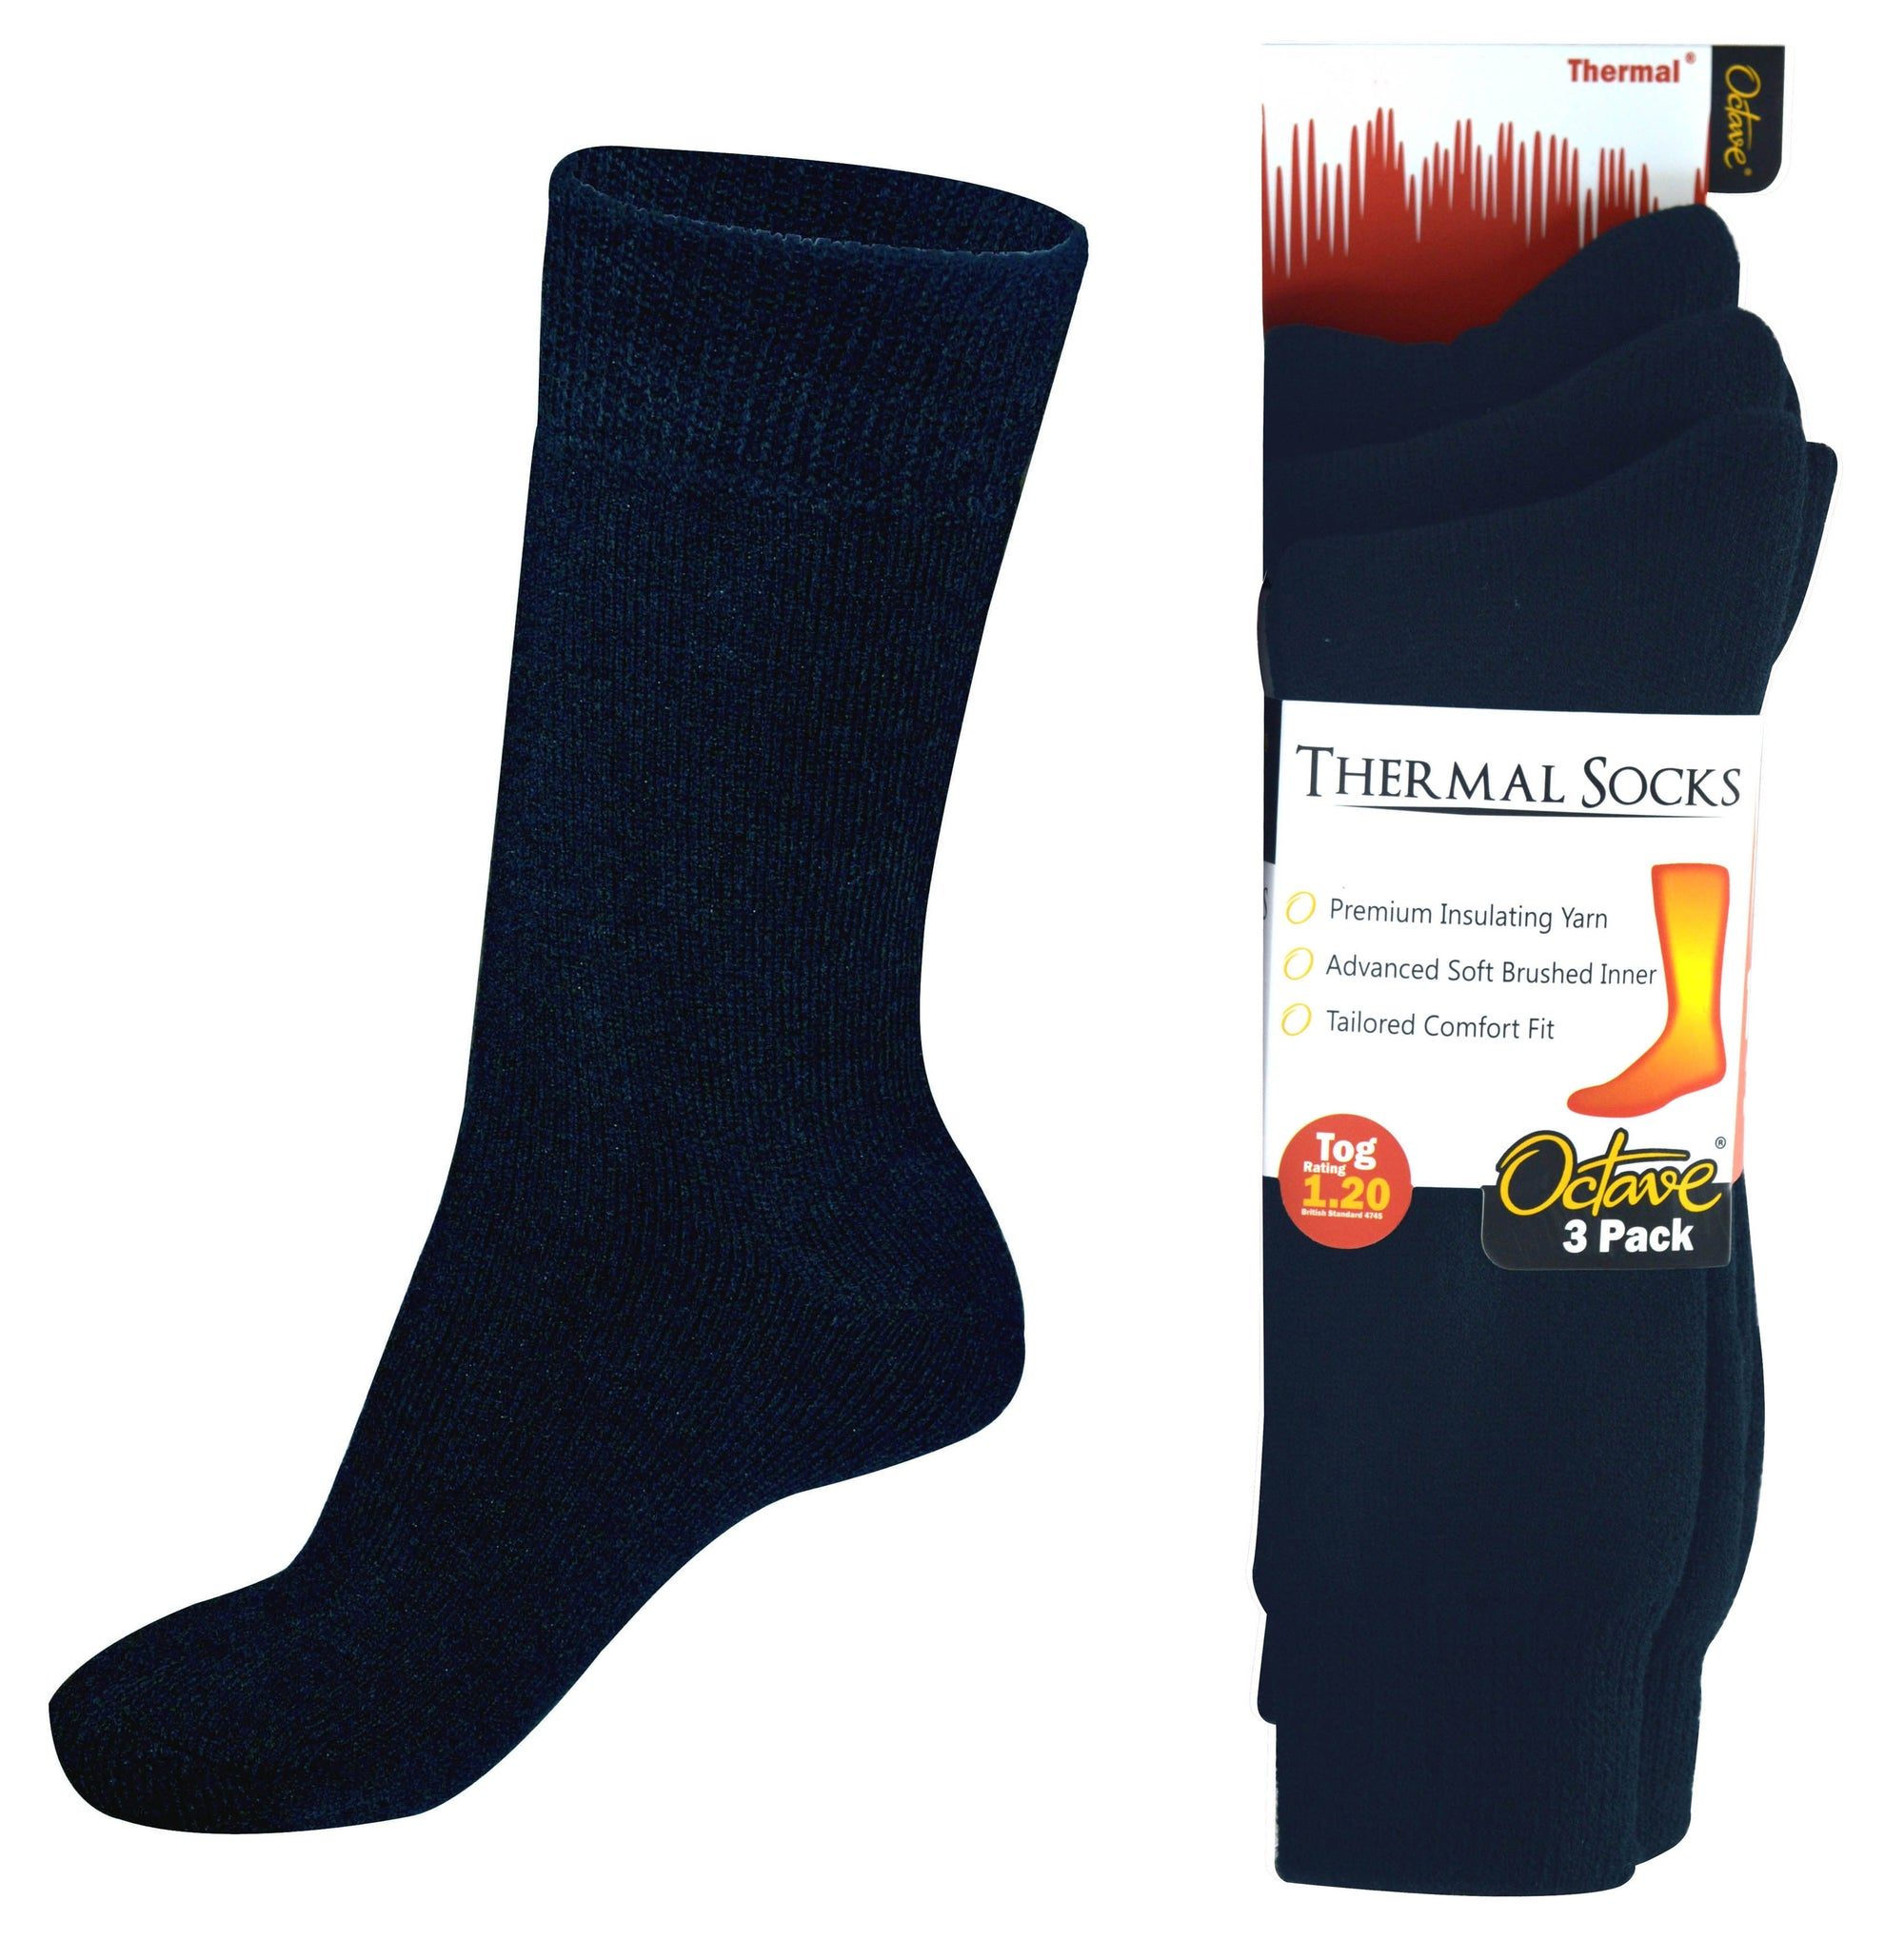 OCTAVE Mens Thermal Socks - 1.2 TOG  Pack of 3 - Navy